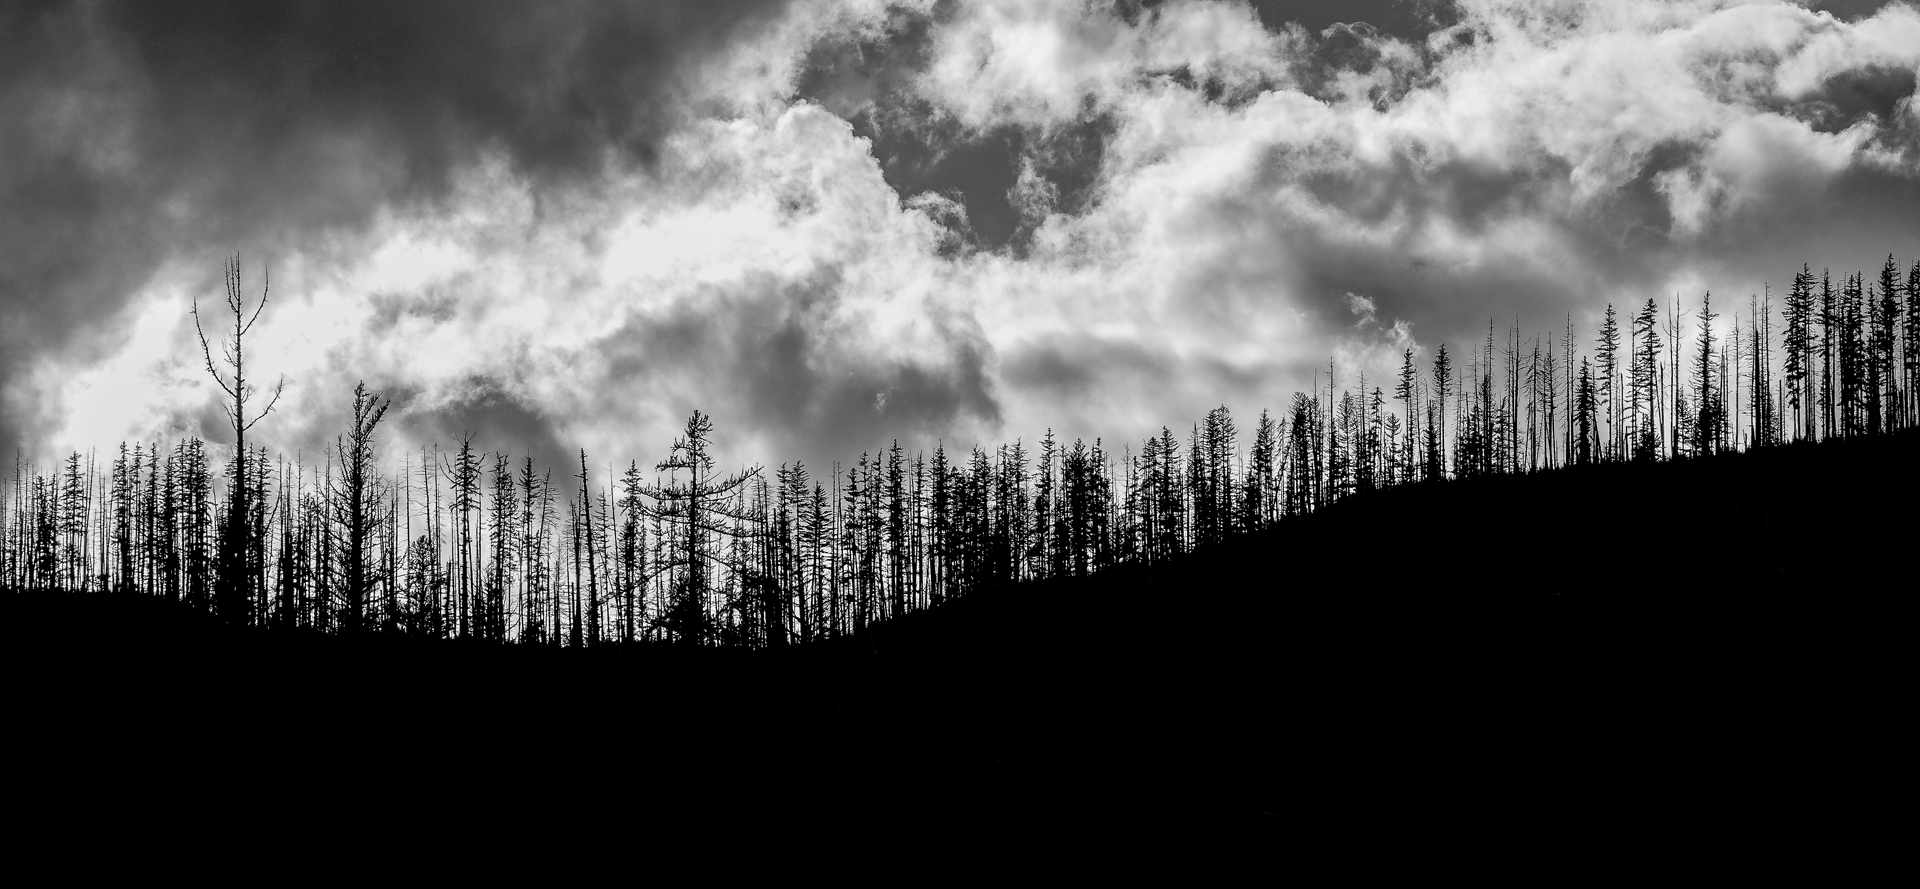 Forest Fire Aftermath - Monochrome Print (Open) - Bob Muschewske